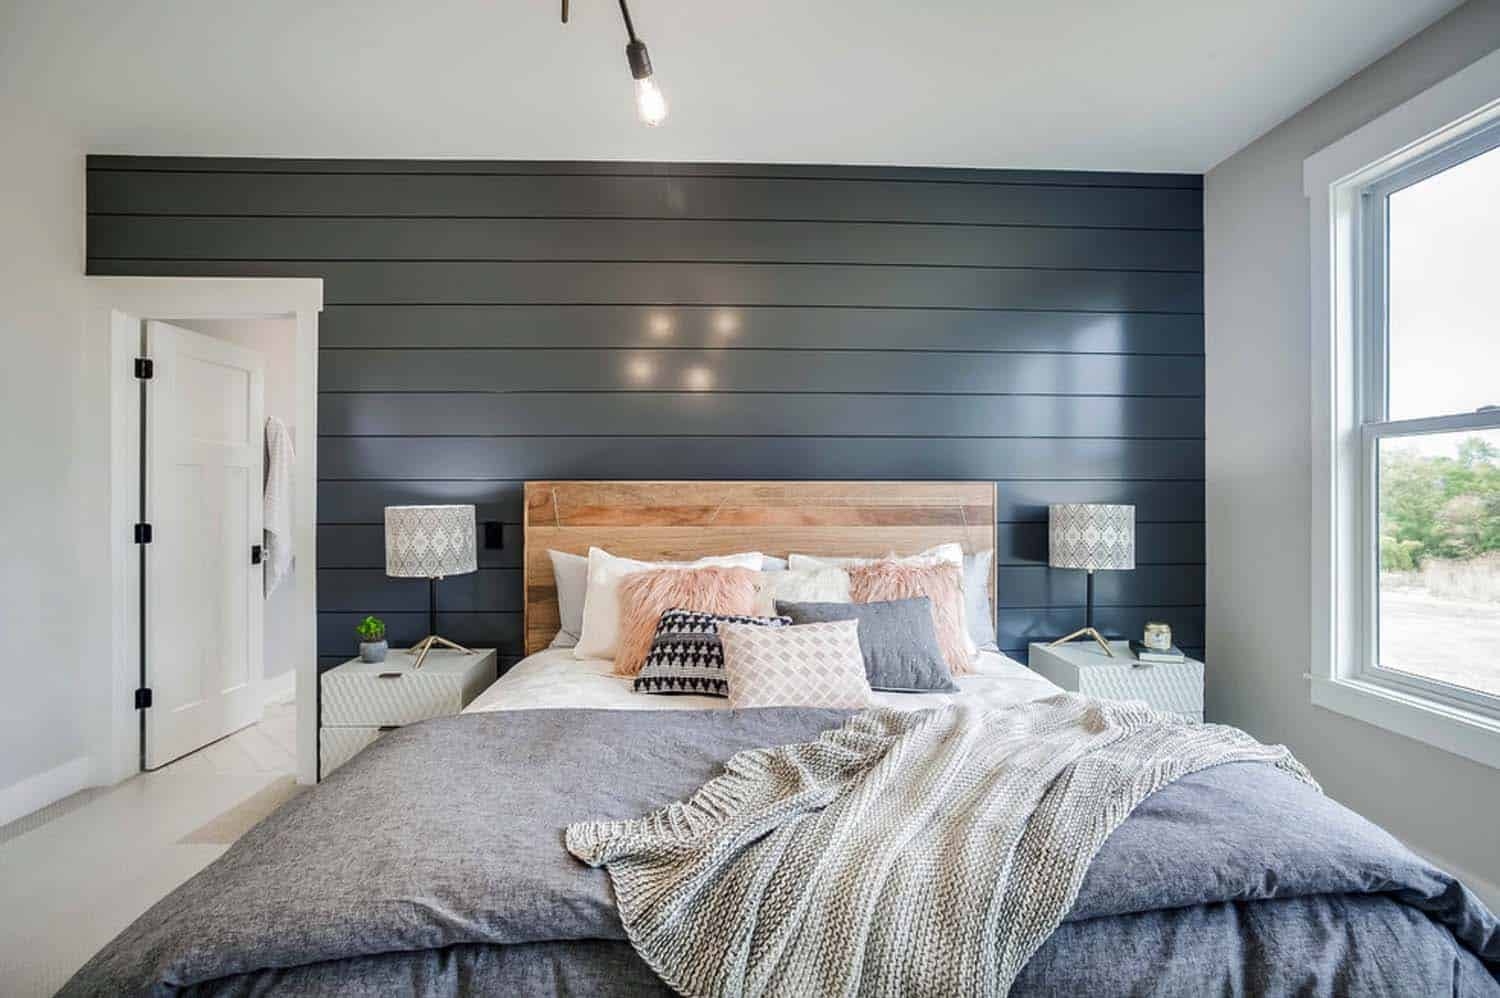 Farmhouse Bedroom Decorating Ideas: Modern Eclectic Farmhouse With Delightful Design Features